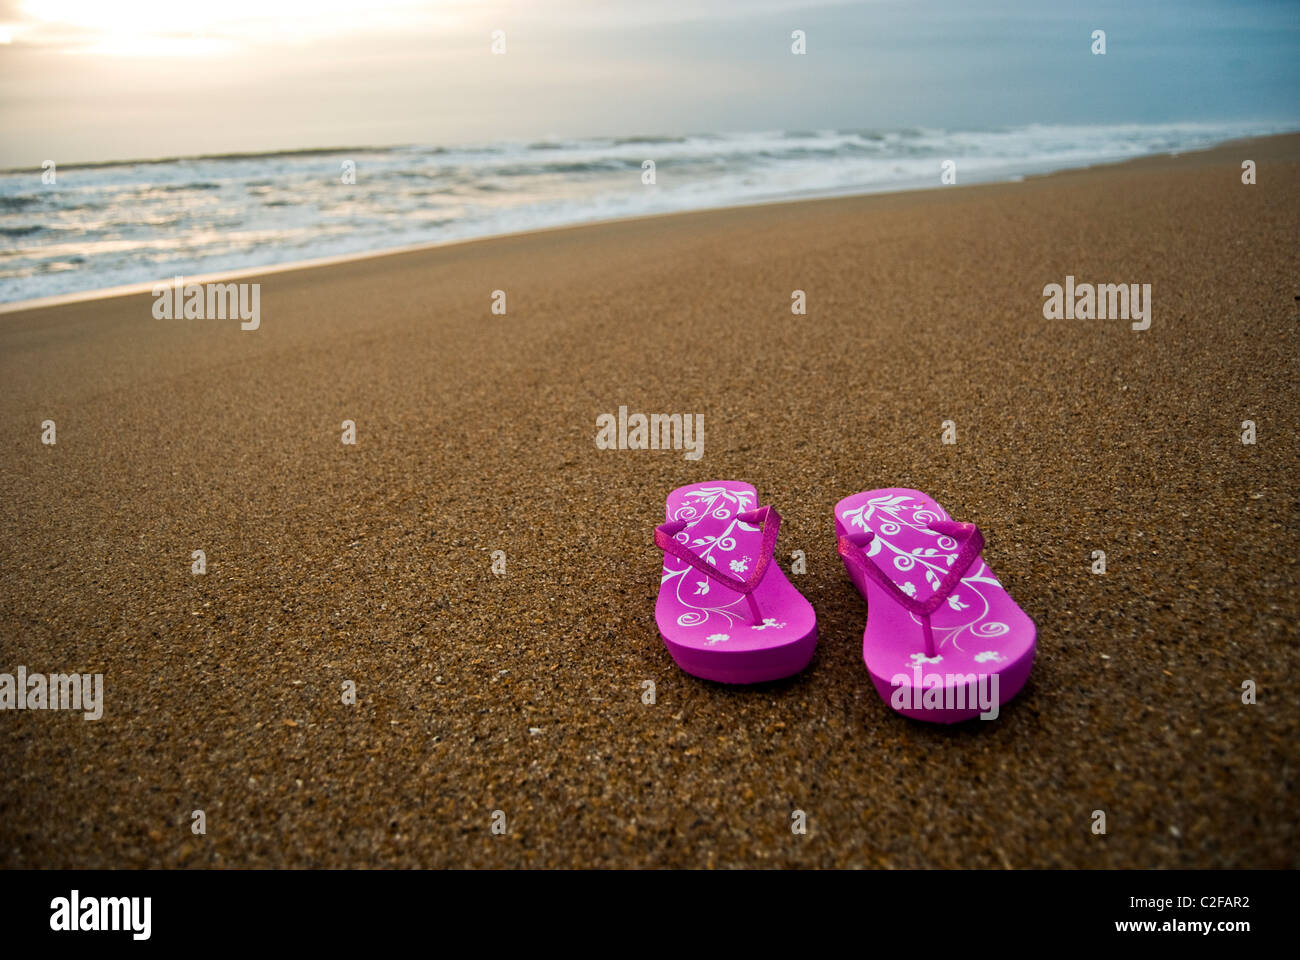 Pink women's flip-flops on an empty and clean beach at sunrise. - Stock Image